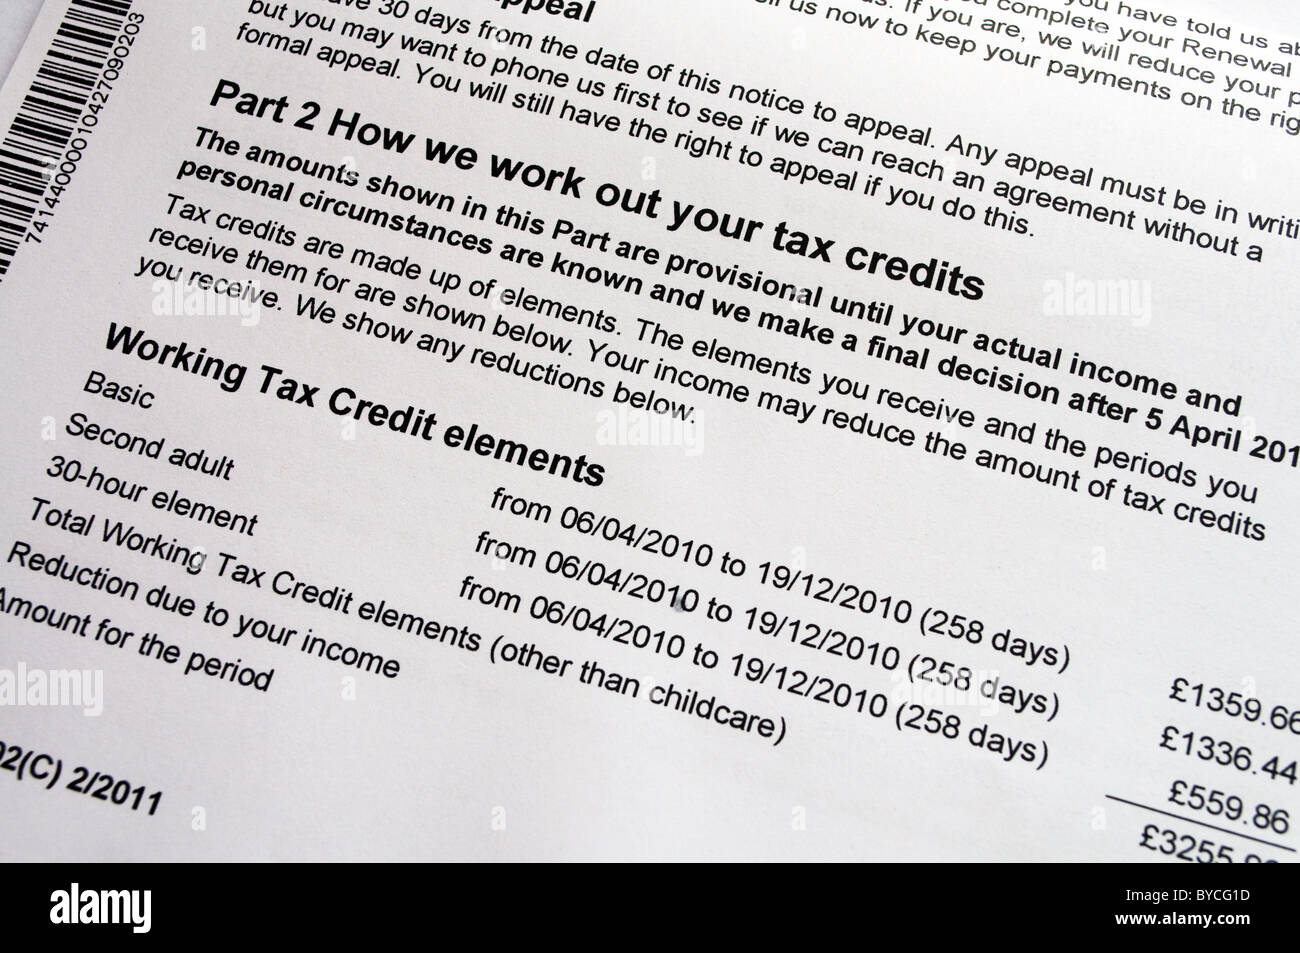 how to pay back tax credits